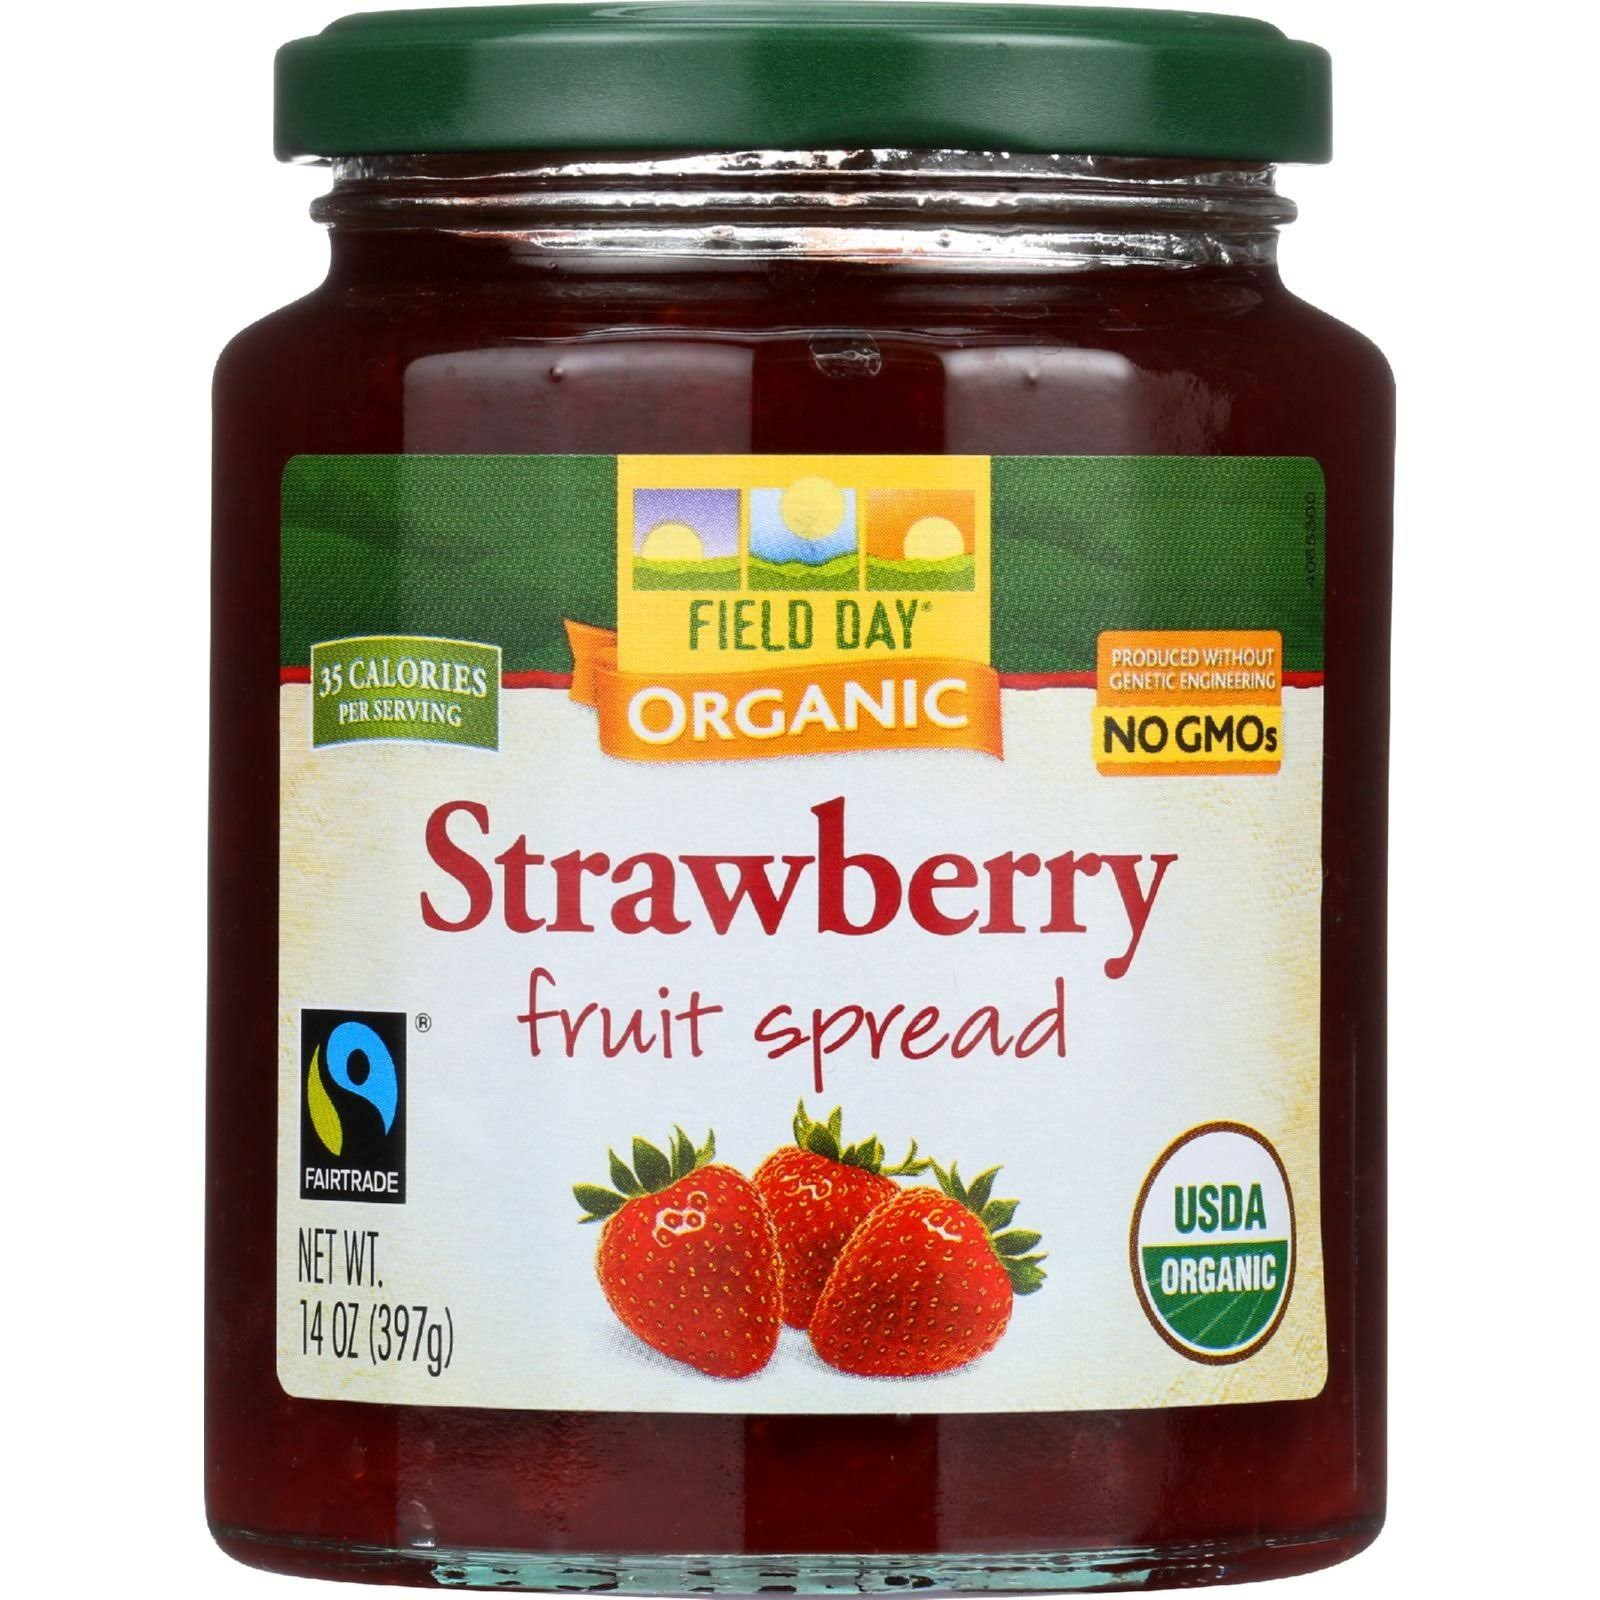 Field Day Organic Fruit Spread - Strawberry - 14 oz